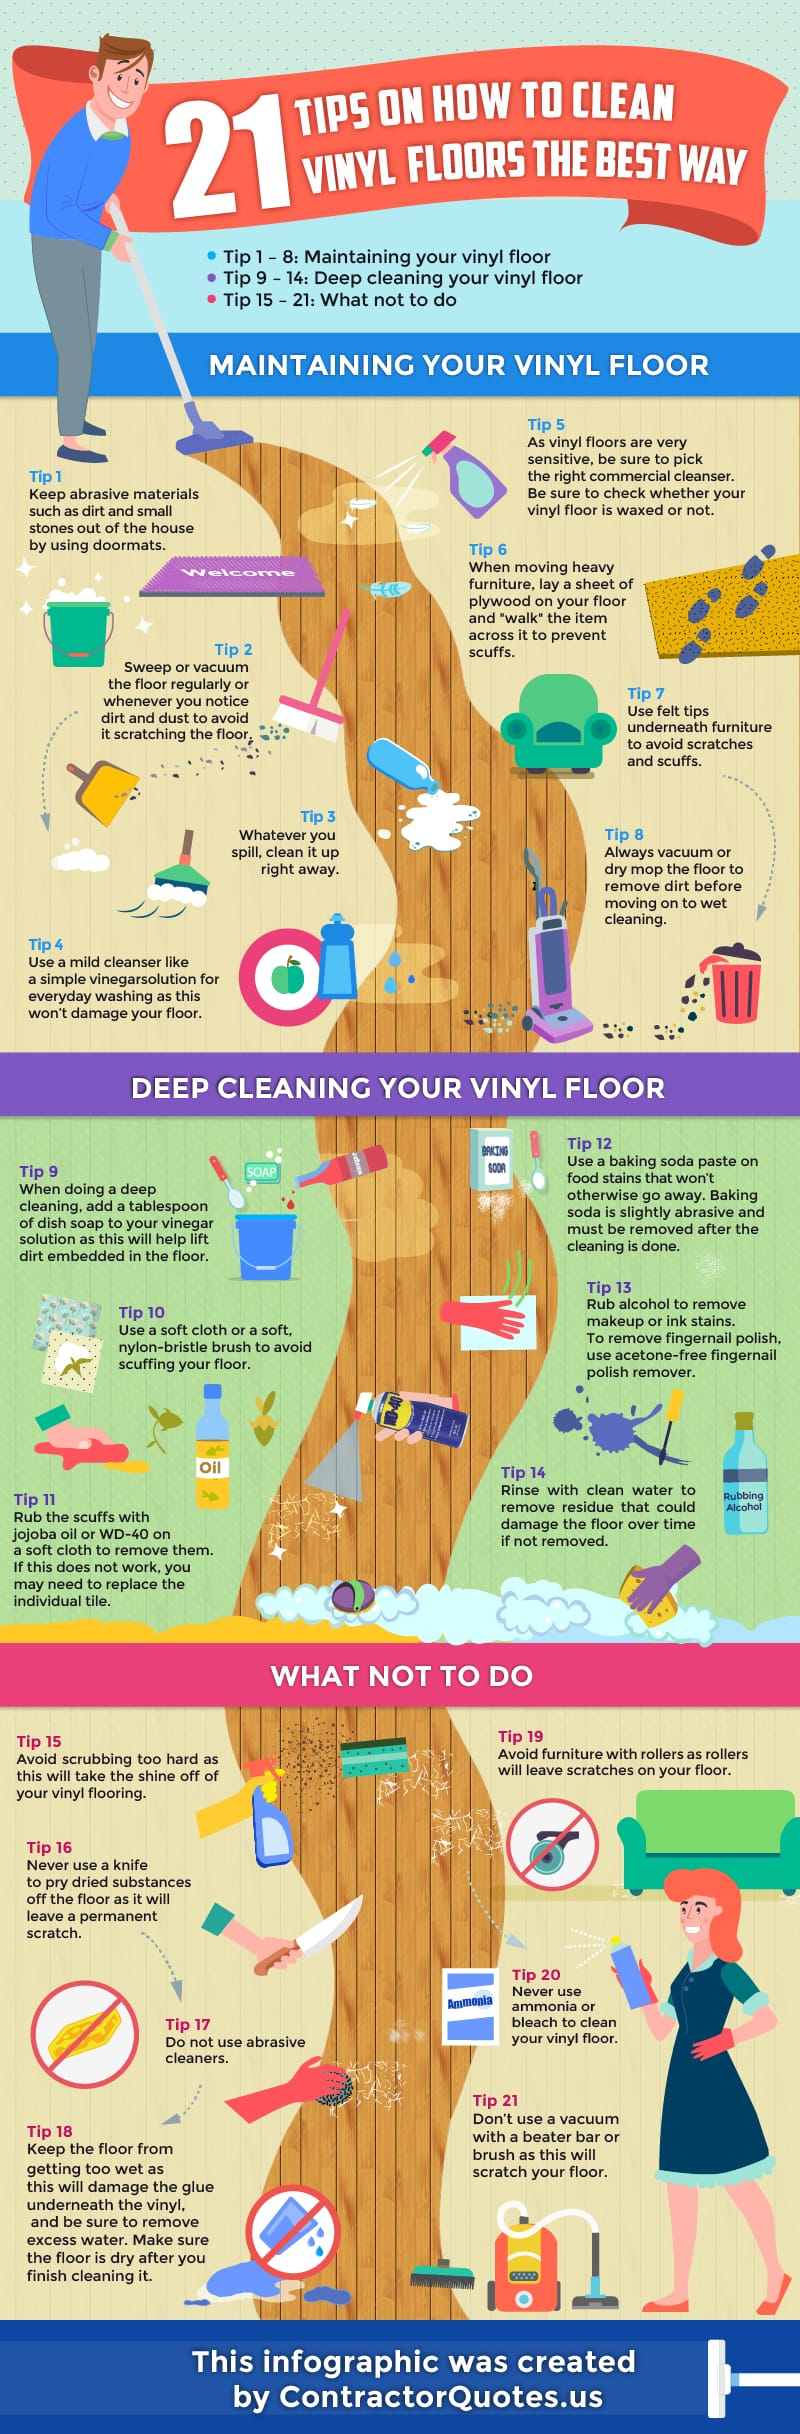 21 tips how to clean vinyl plank flooring the best way 26519